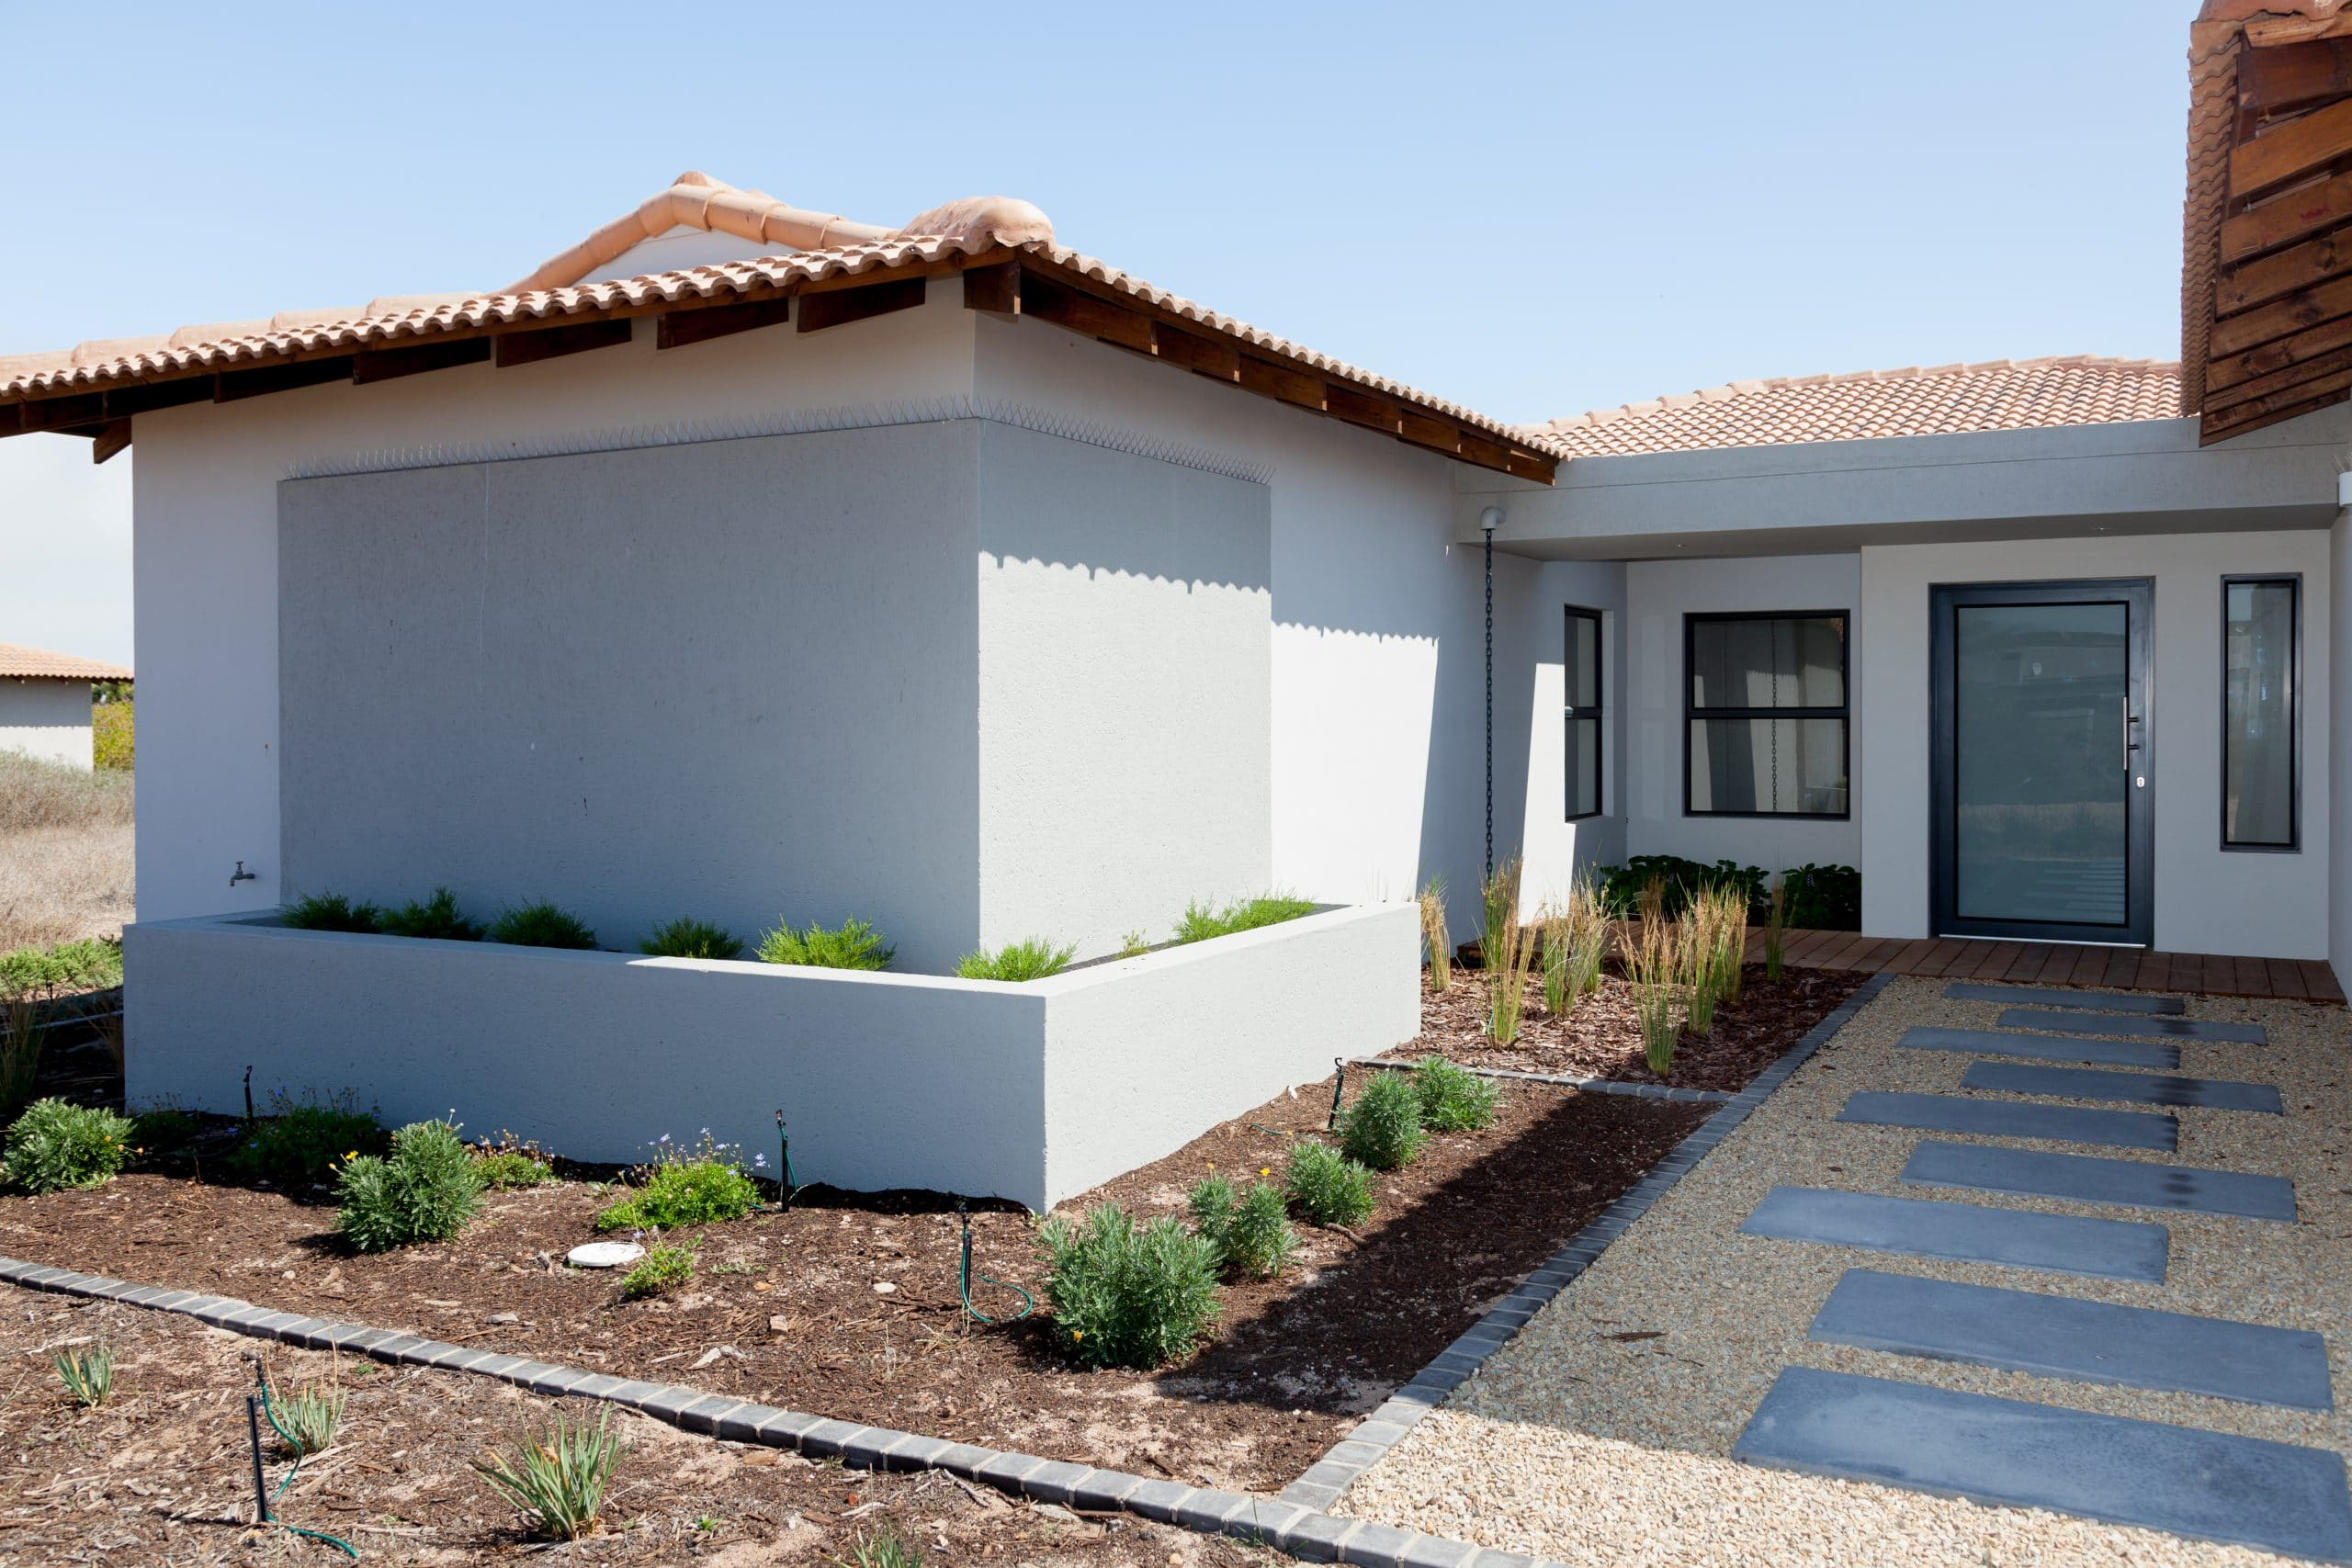 corner flowerbox with landscaped entrance langebaan country estate